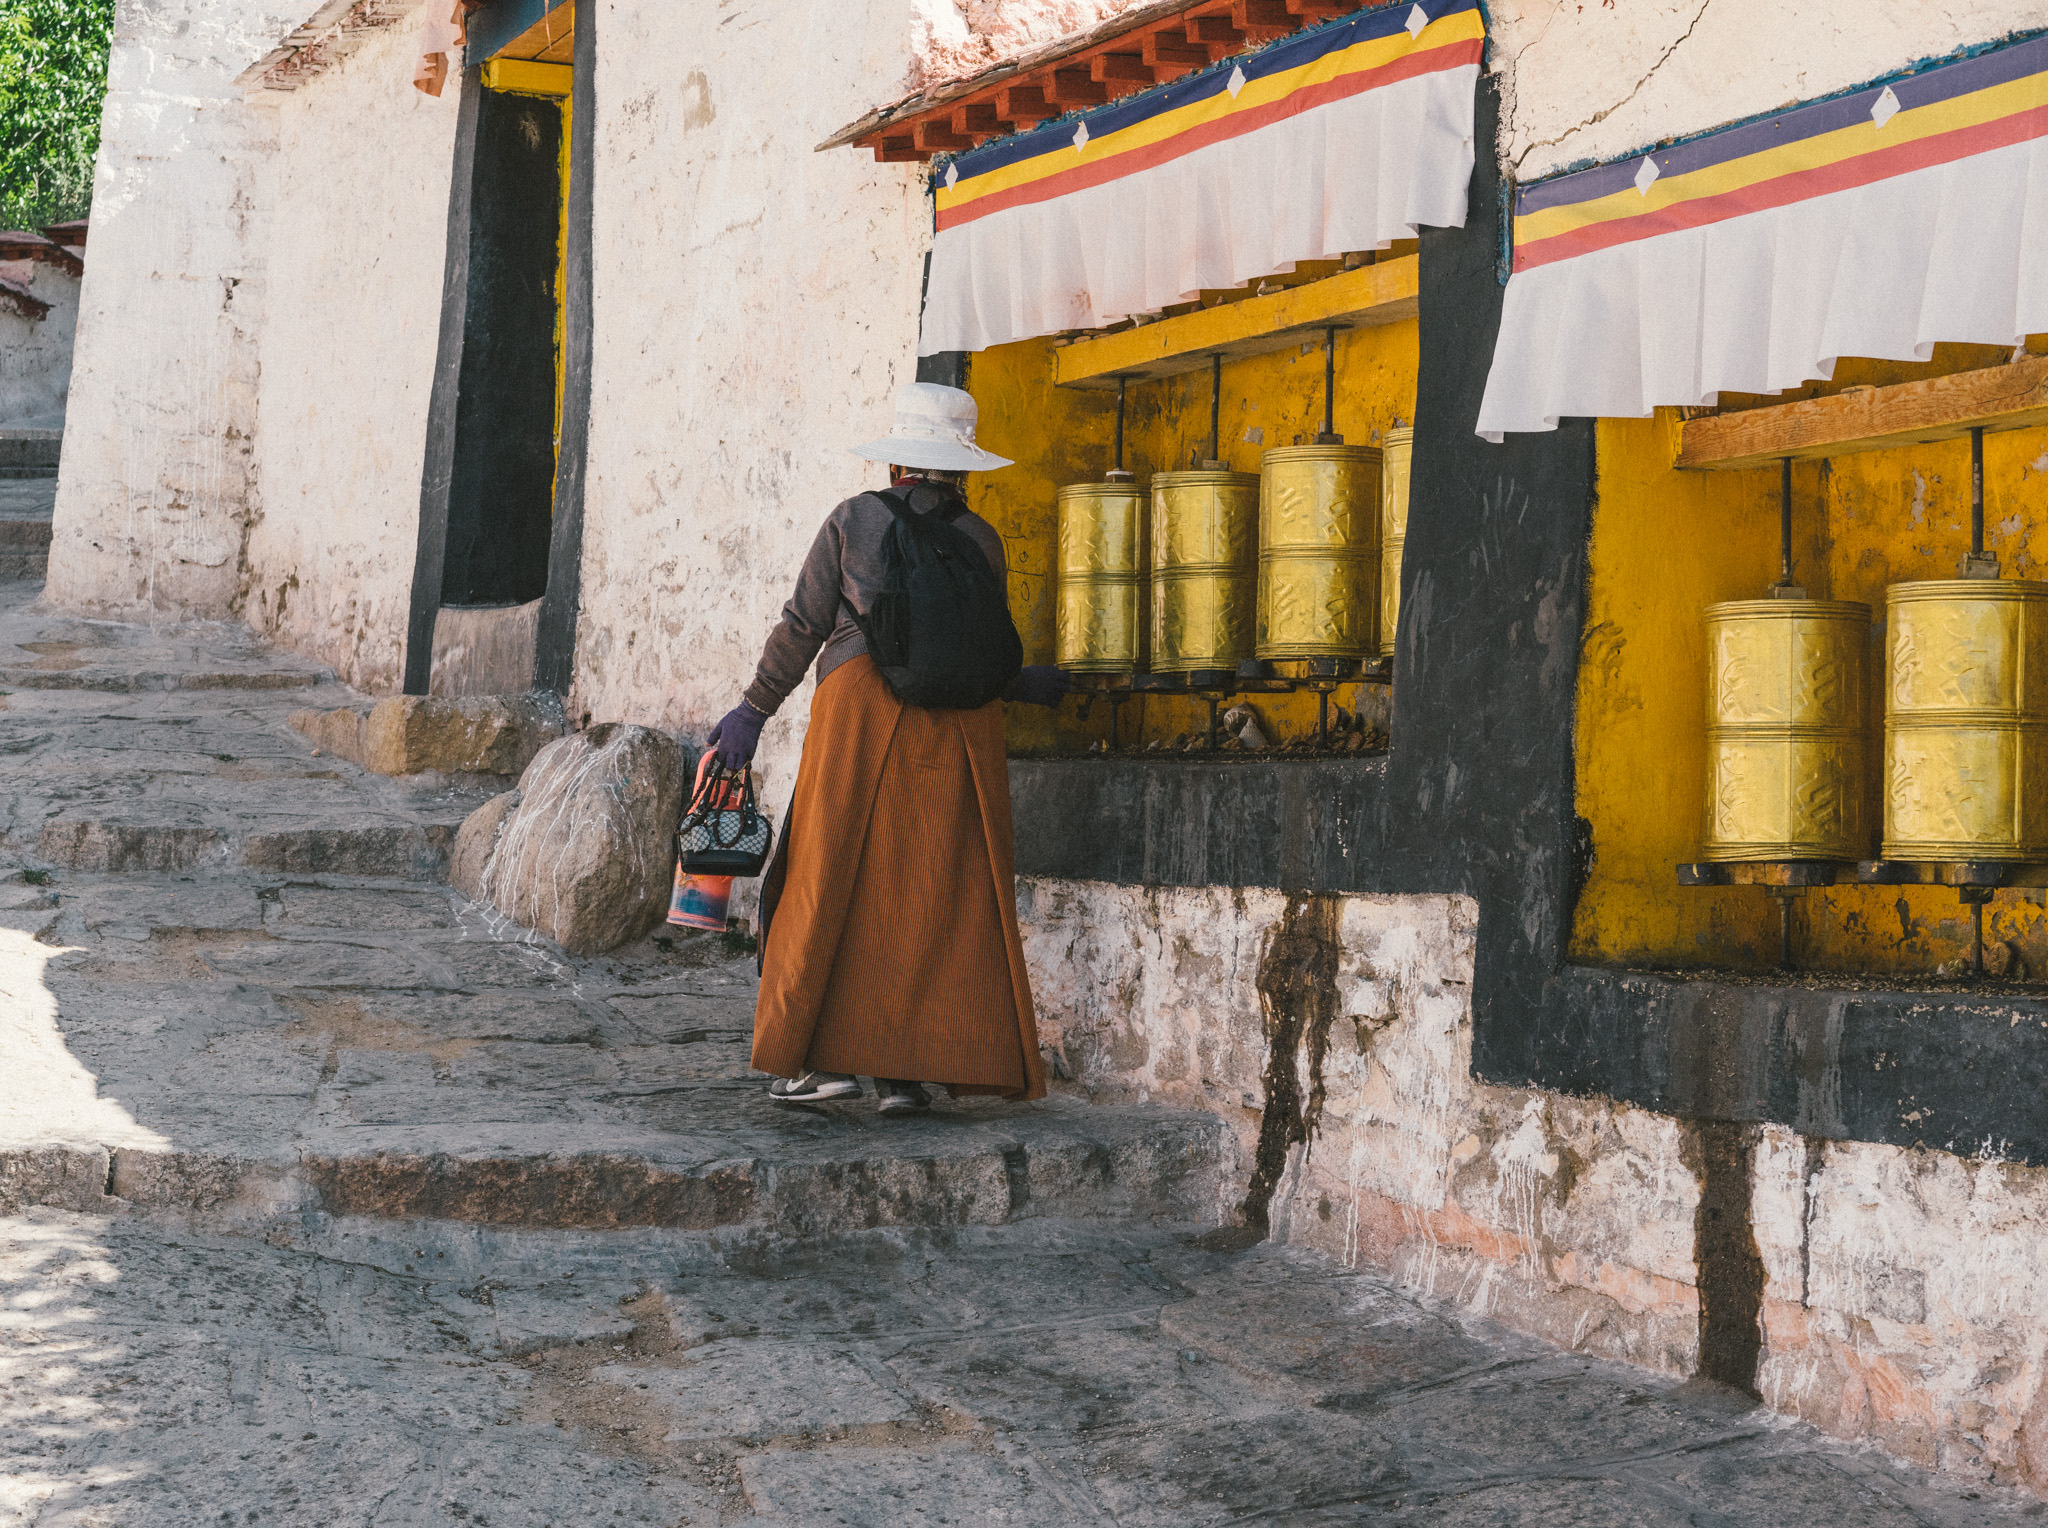 Tibetan woman spinning prayer wheels in the Sera Monastery